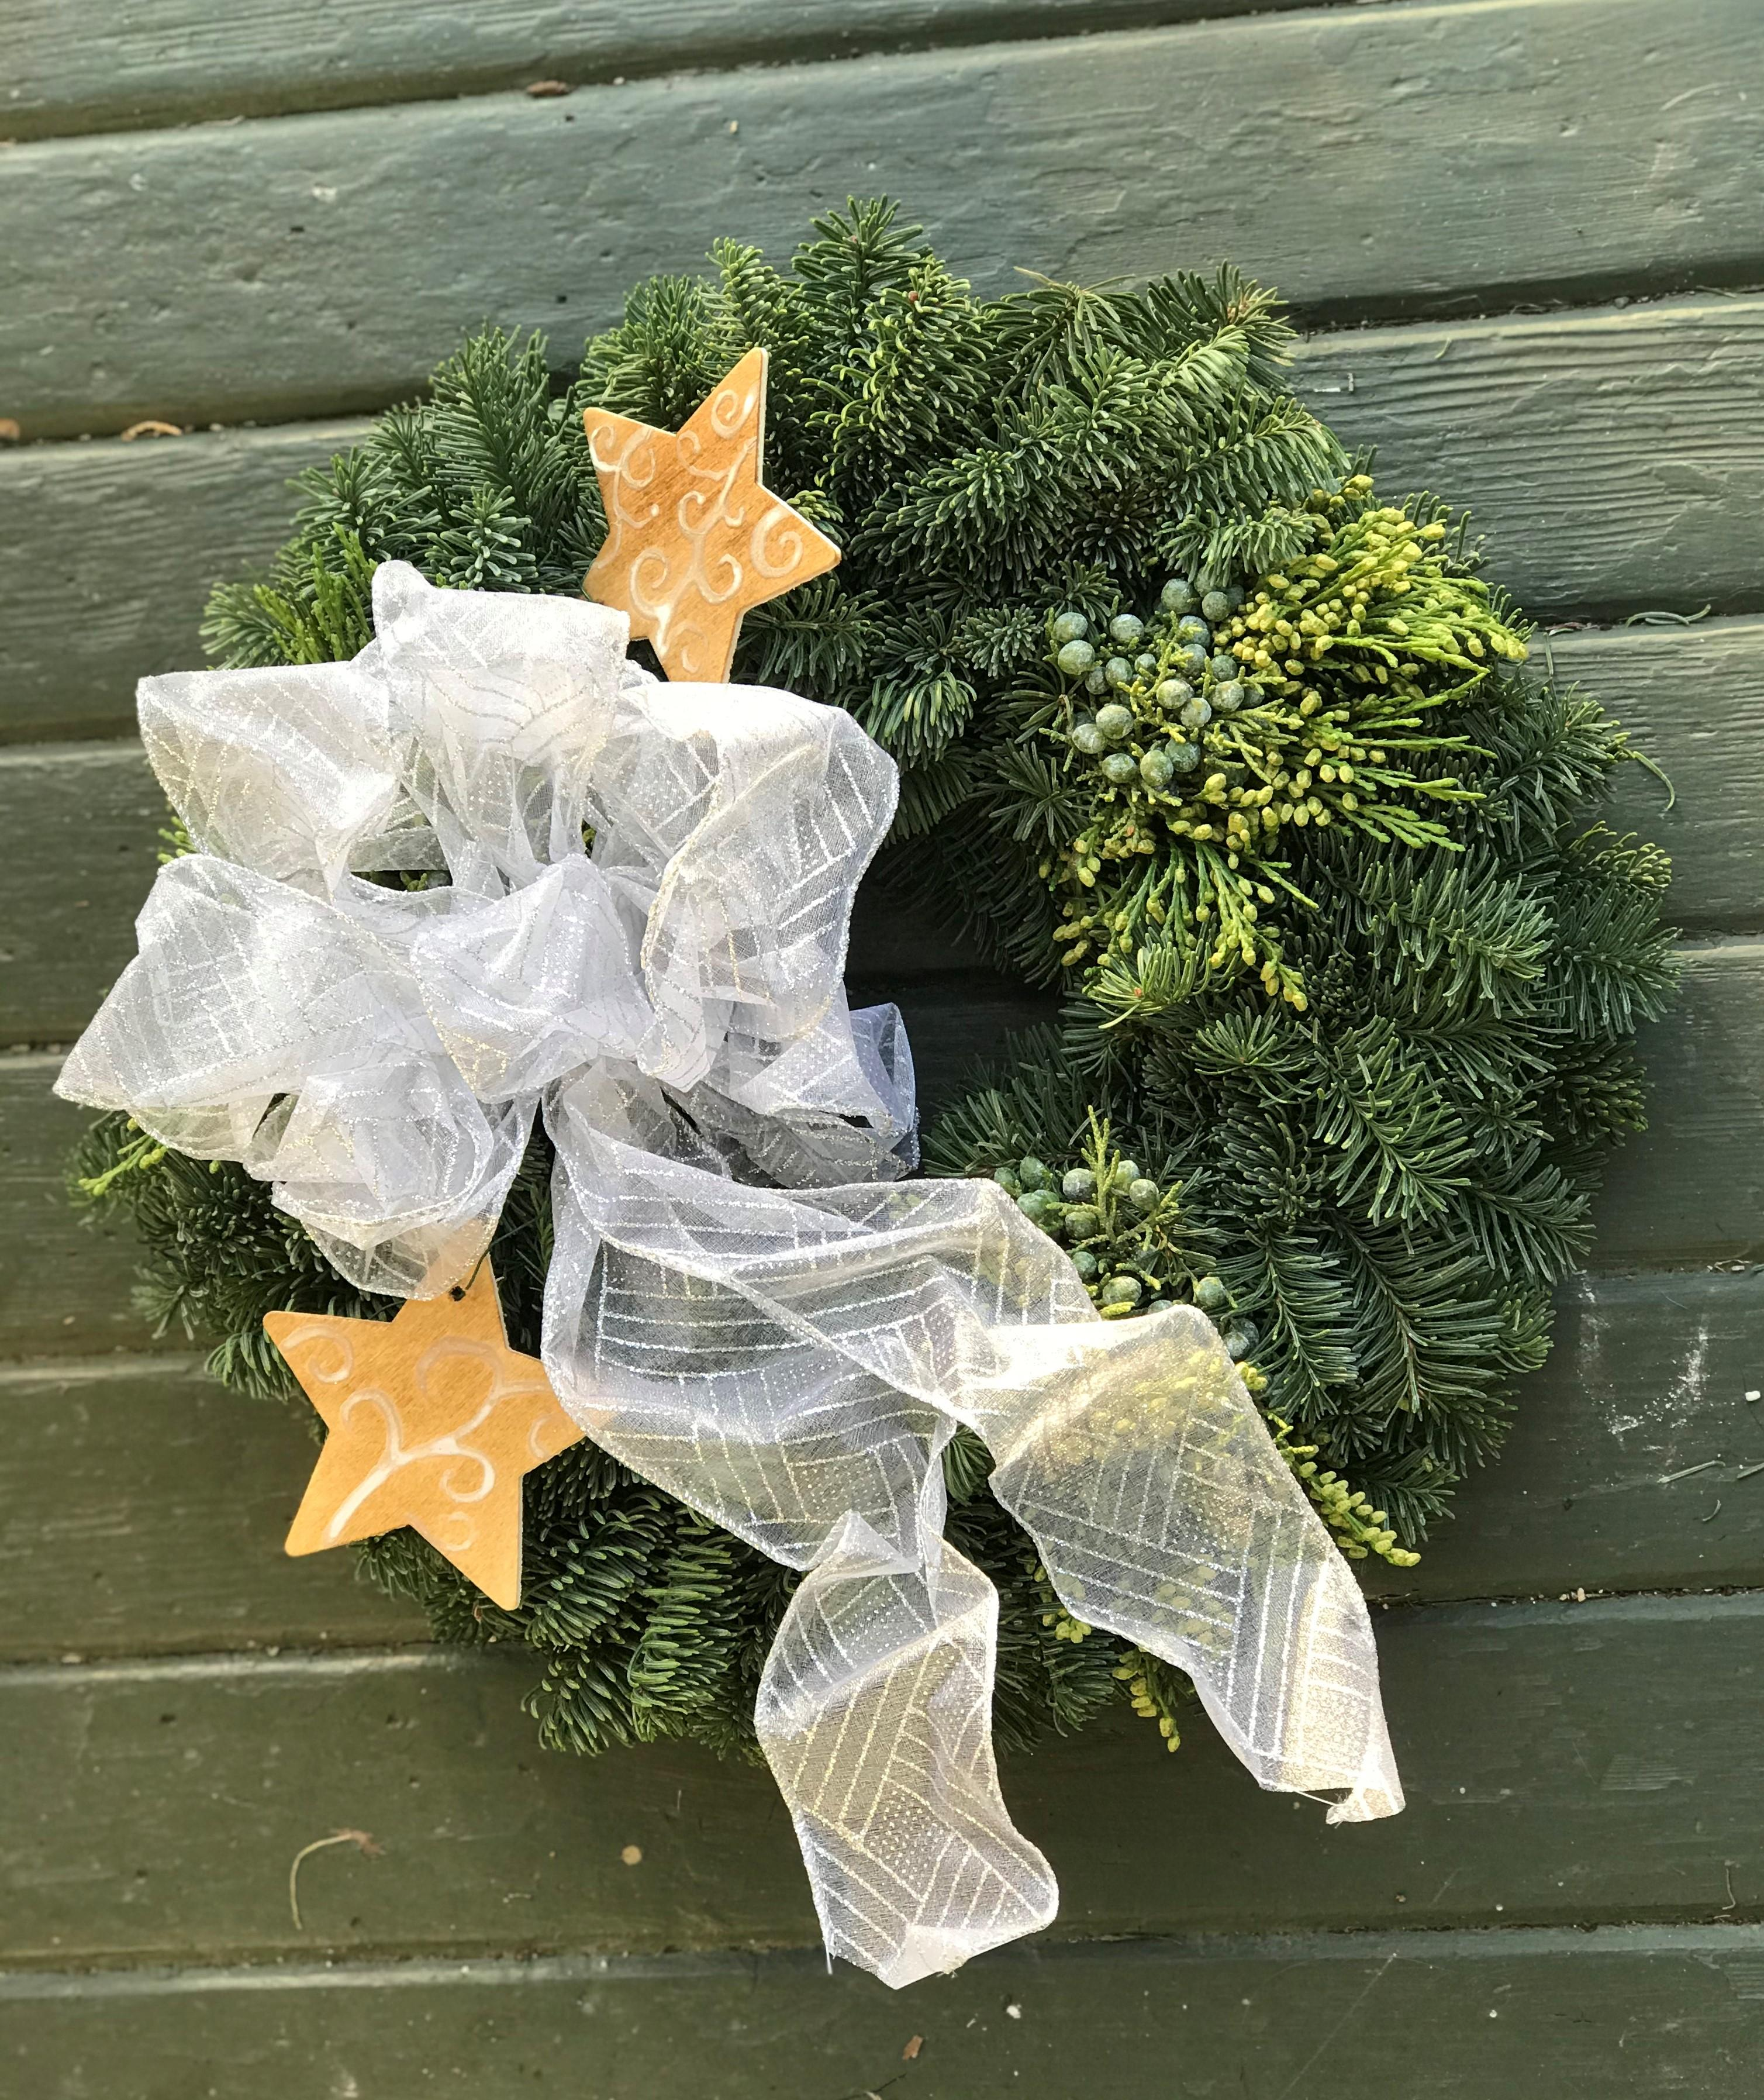 Sample Christmas wreath image